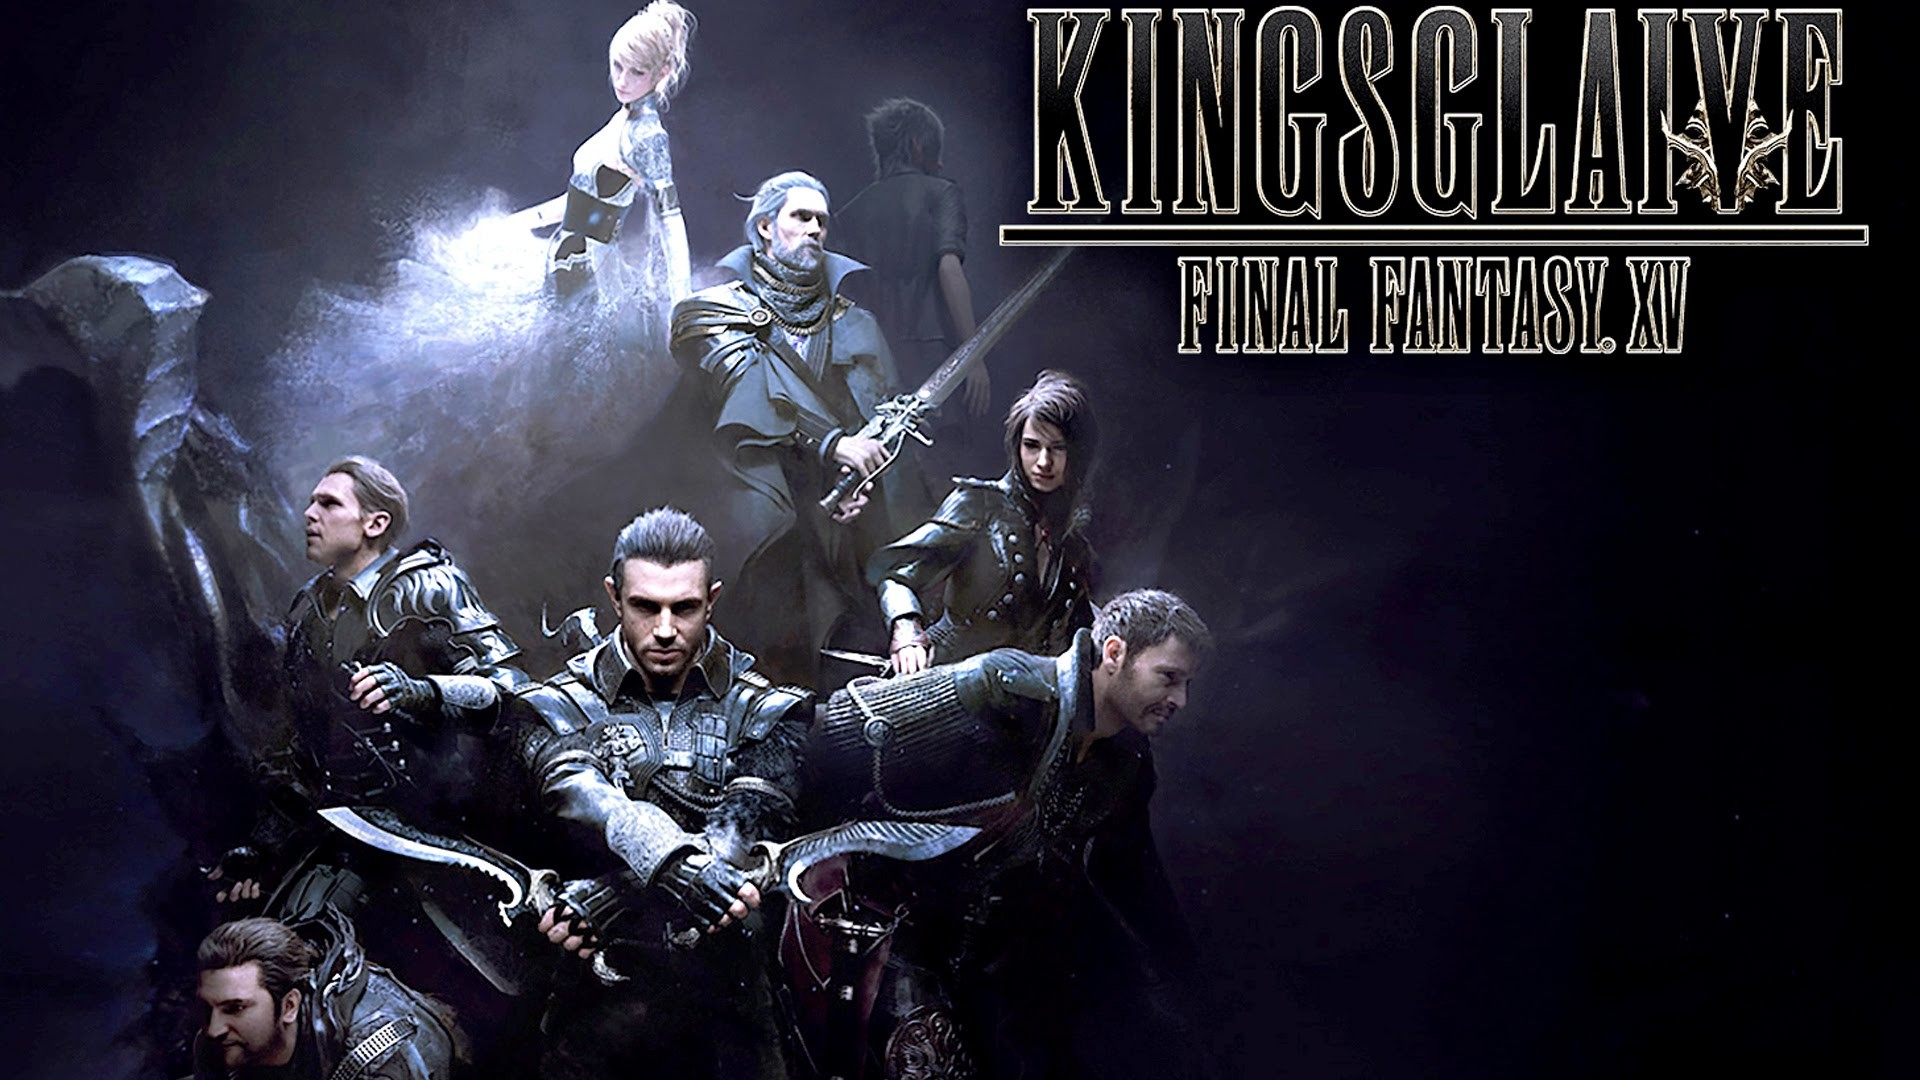 117 Final Fantasy Xv Hd Wallpapers: Final Fantasy XV HD Wallpaper (81+ Images